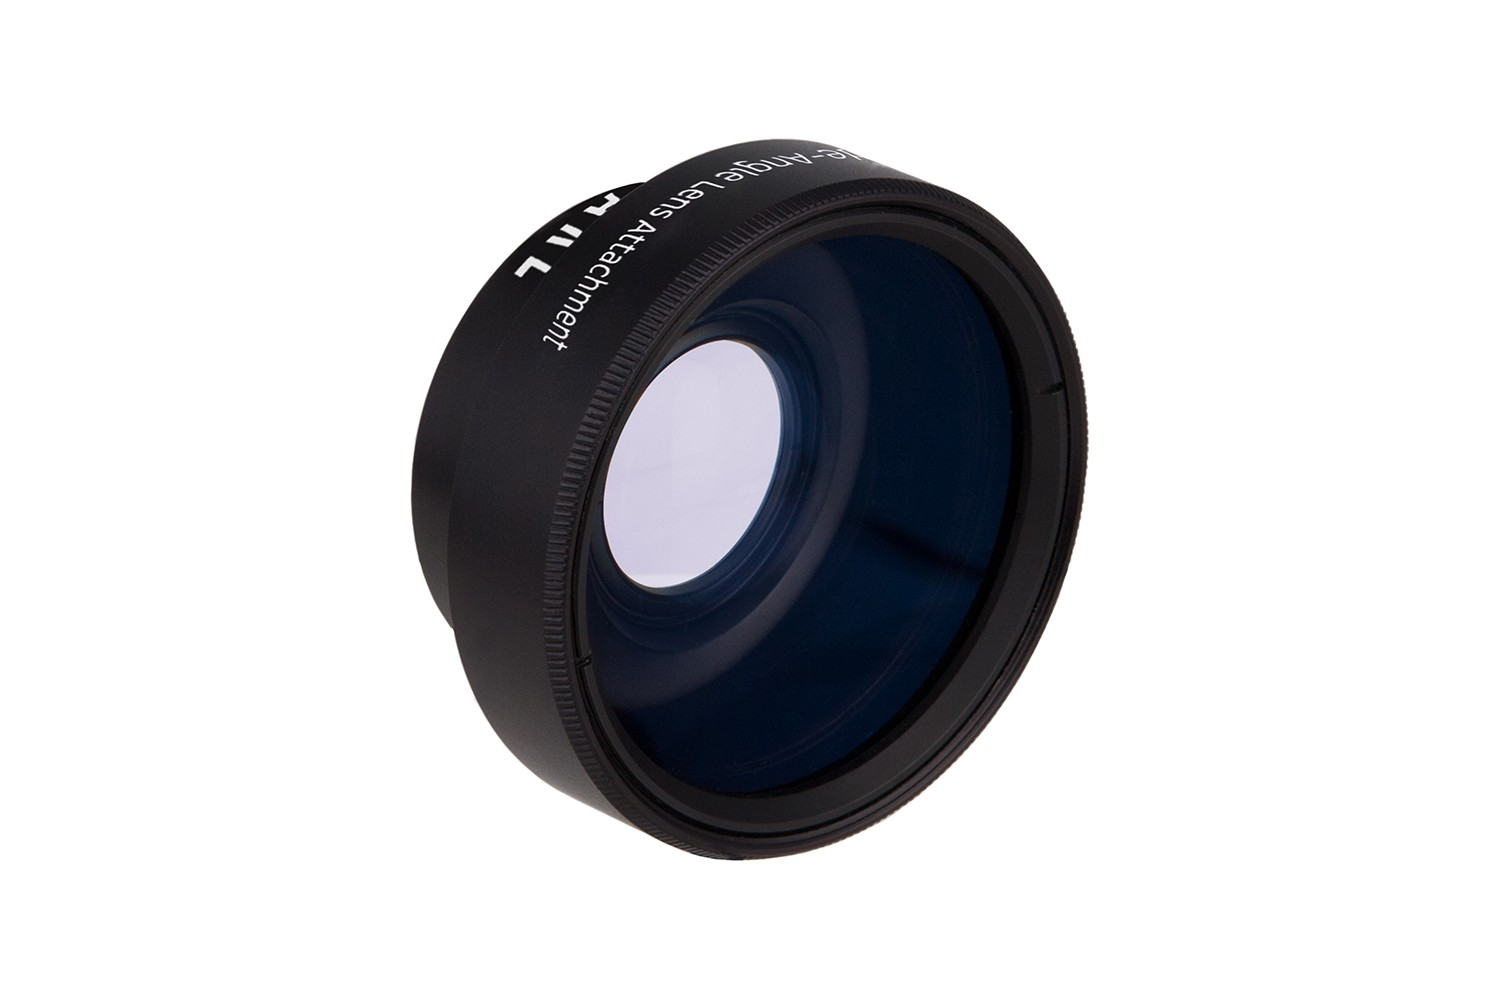 Lomo'Instant Square Wide-Angle Glass Lens Attachment